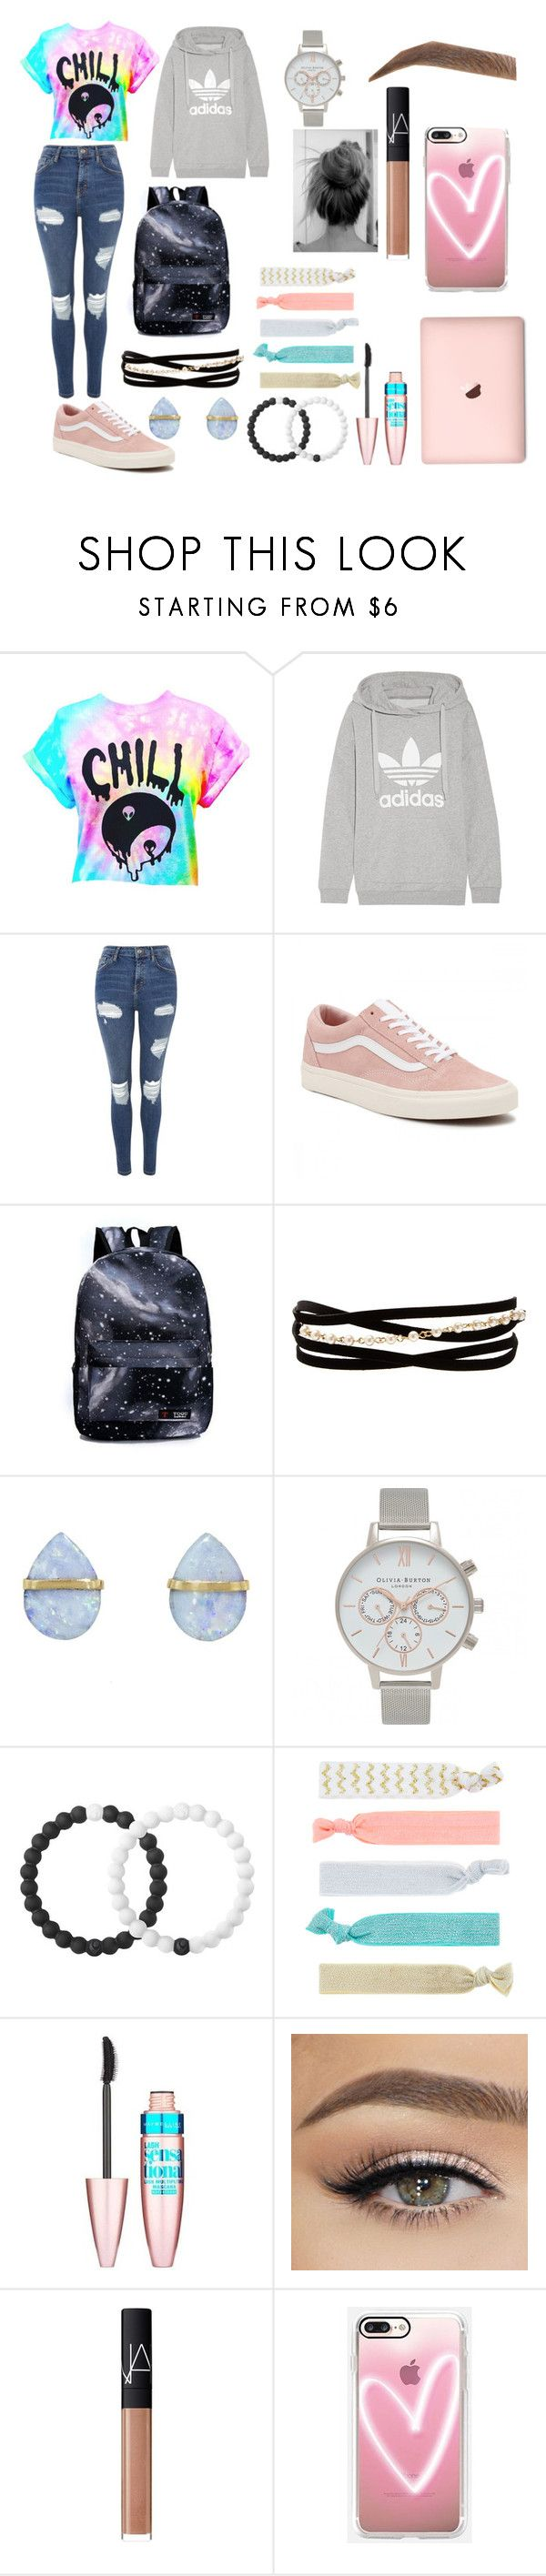 """college day"" by average-addison on Polyvore featuring adidas Originals, Topshop, Vans, Kenneth Jay Lane, Melissa Joy Manning, Olivia Burton, Lokai, Accessorize, Maybelline and NARS Cosmetics"